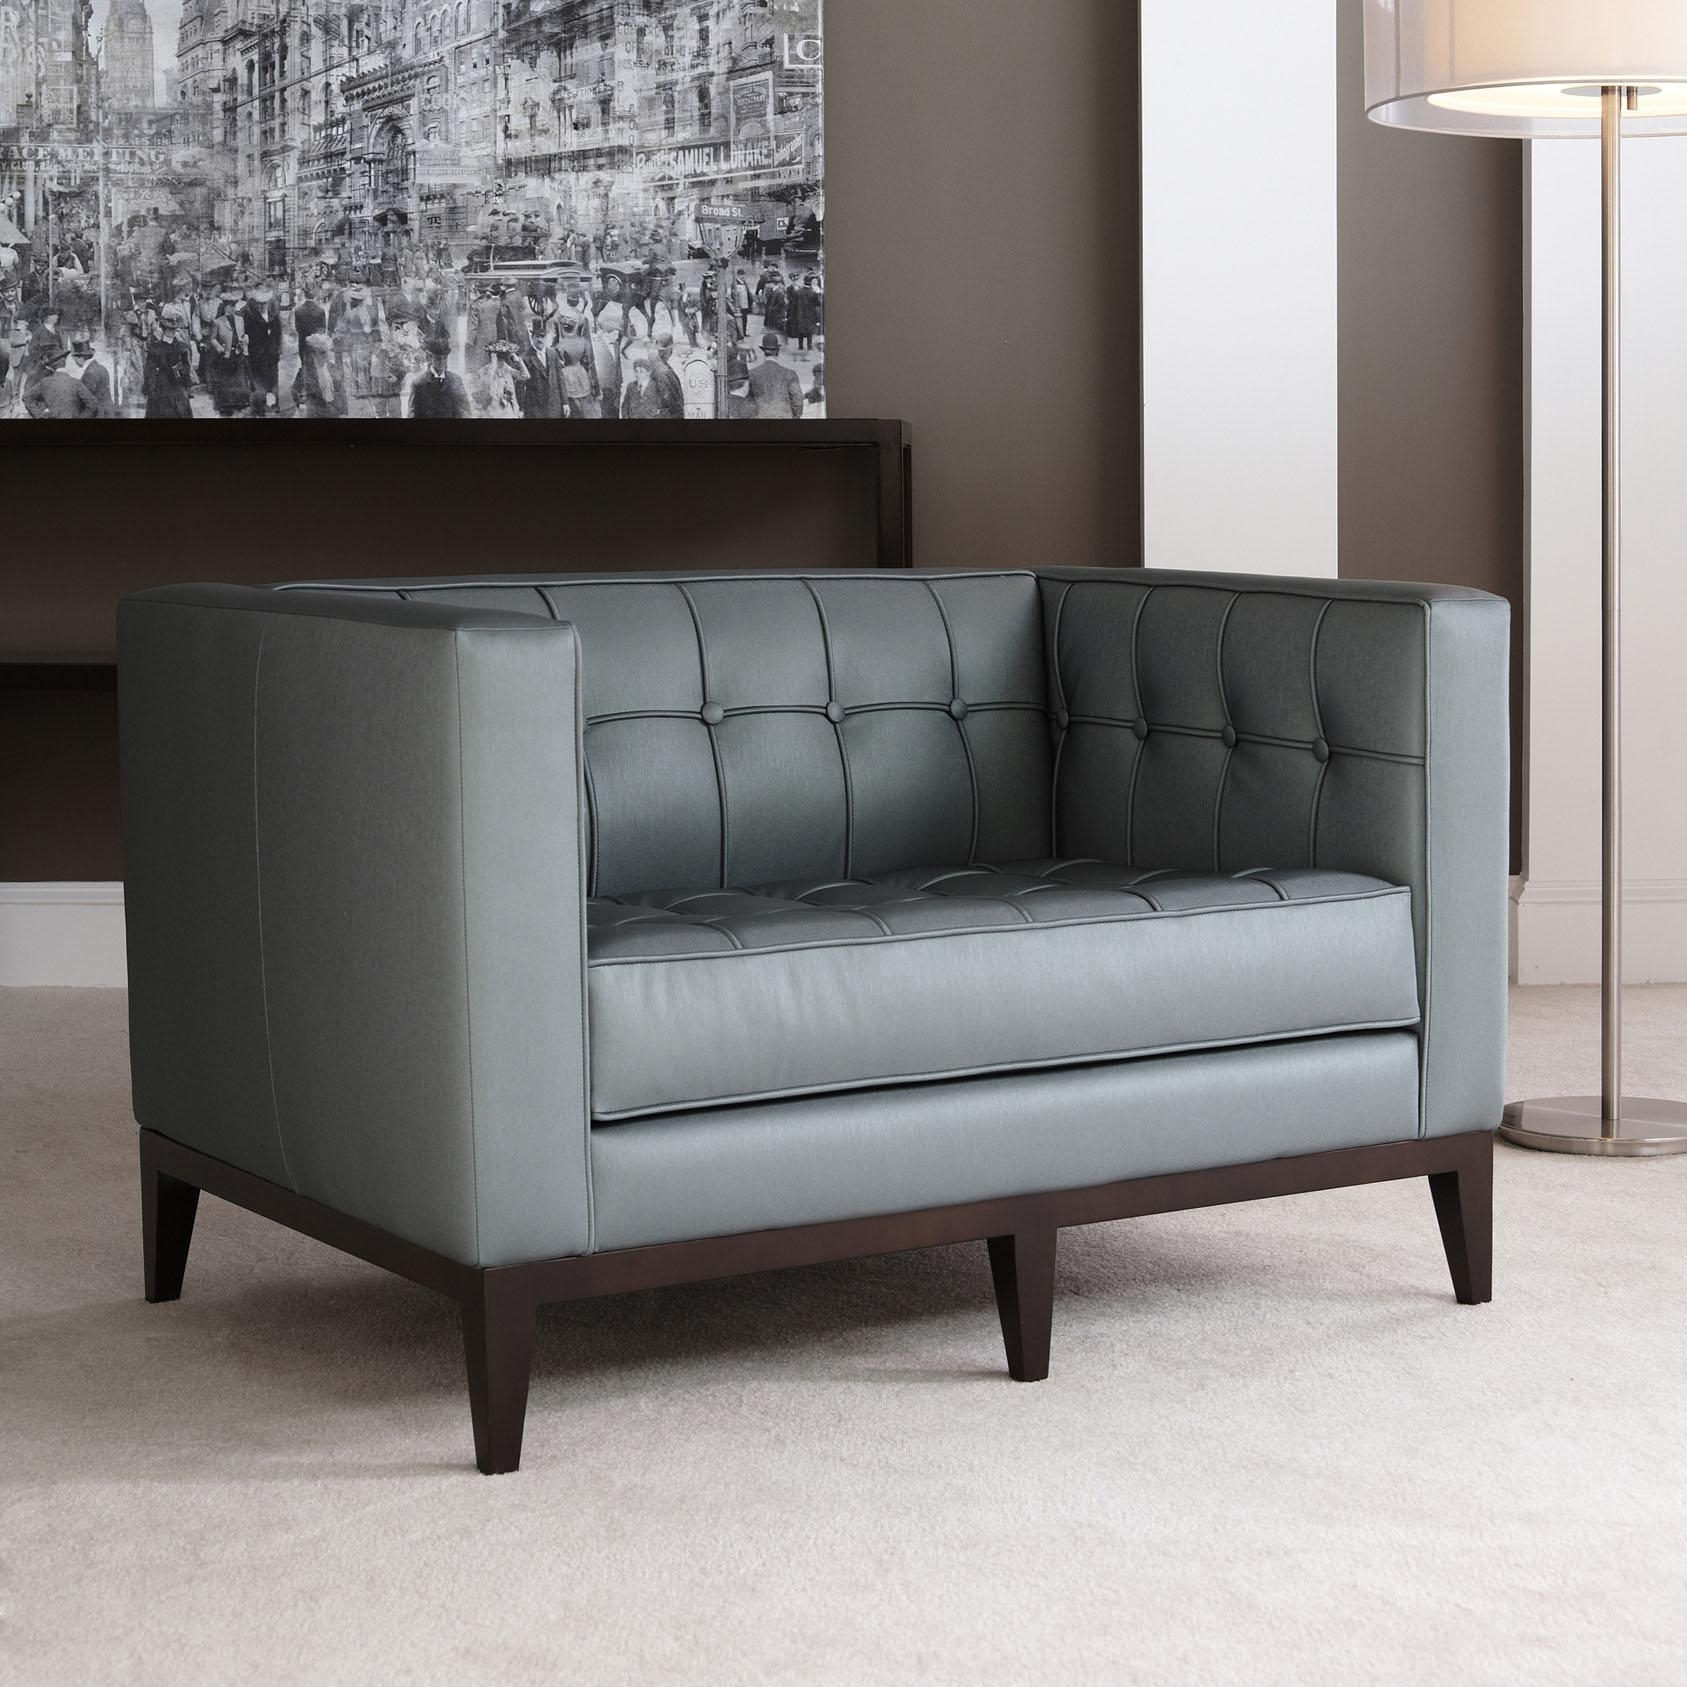 American Leather Luxe Sofa & Ottoman | Modern Design With Regard To Luxe Sofas (Image 3 of 20)